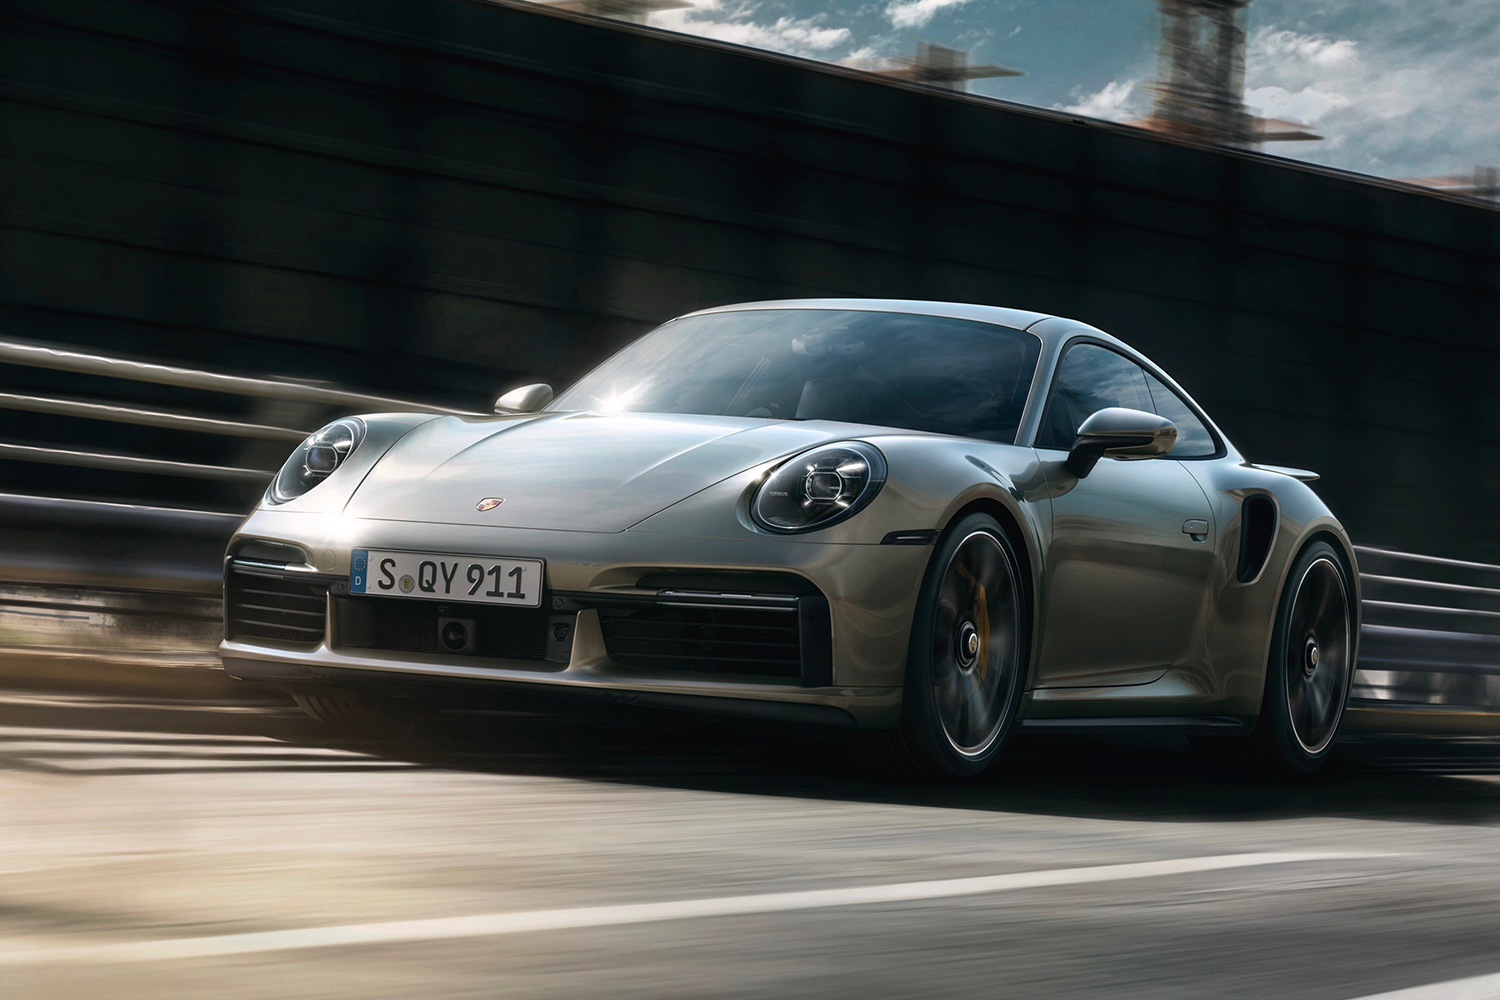 Porsche coupe driving on the highway